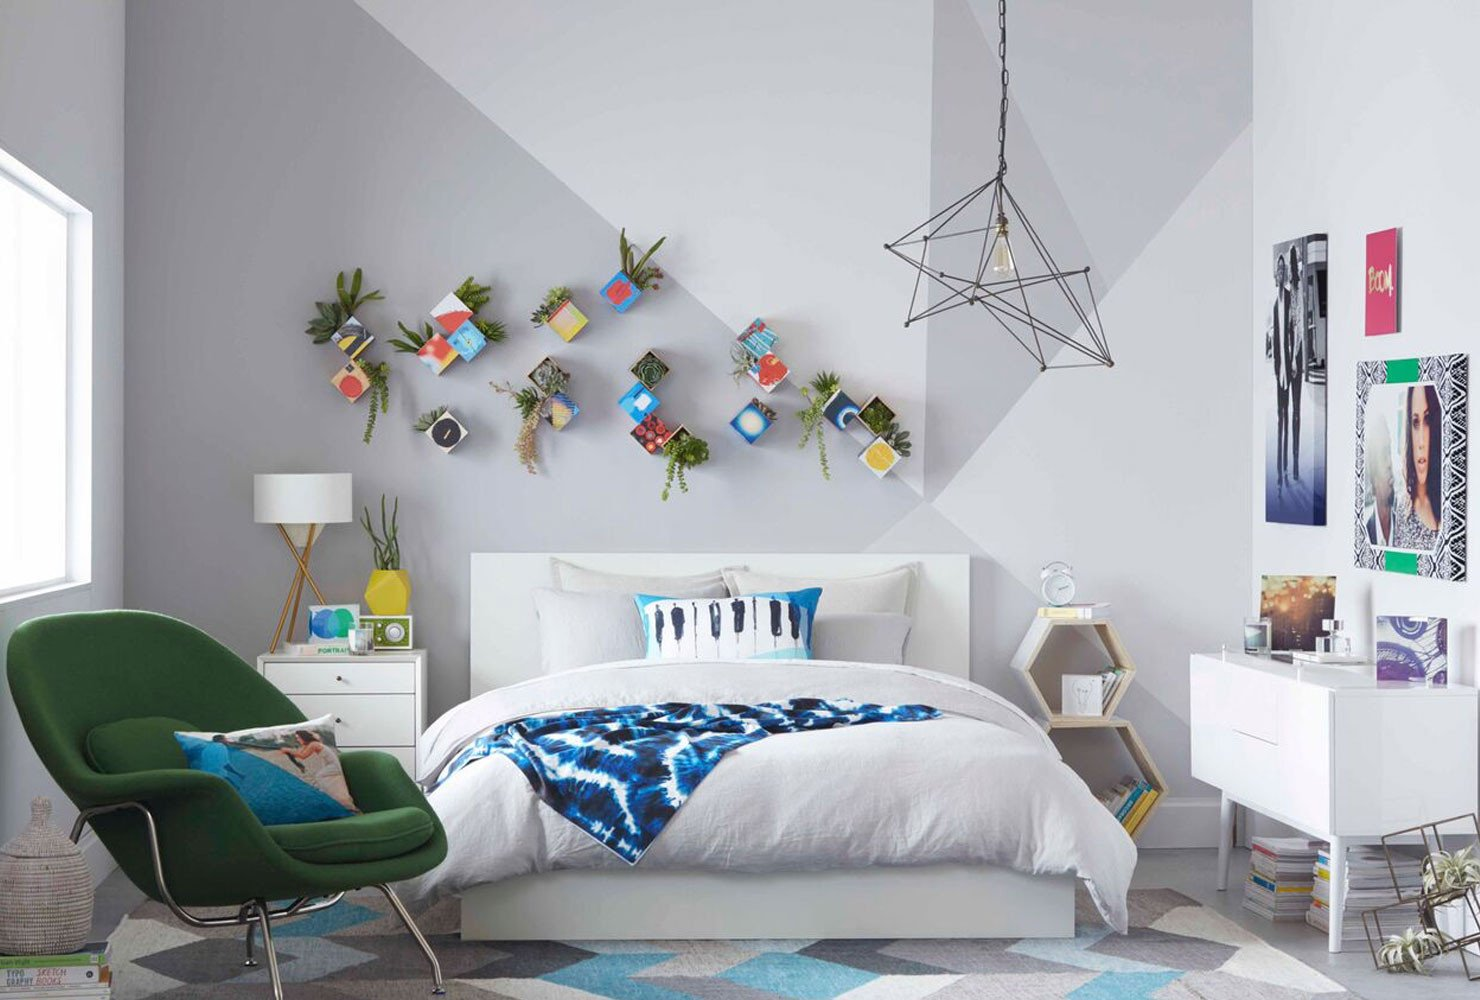 Diy Wall Decor for Bedroom Fresh 24 Diy Bedroom Decor Ideas to Inspire You with Printables